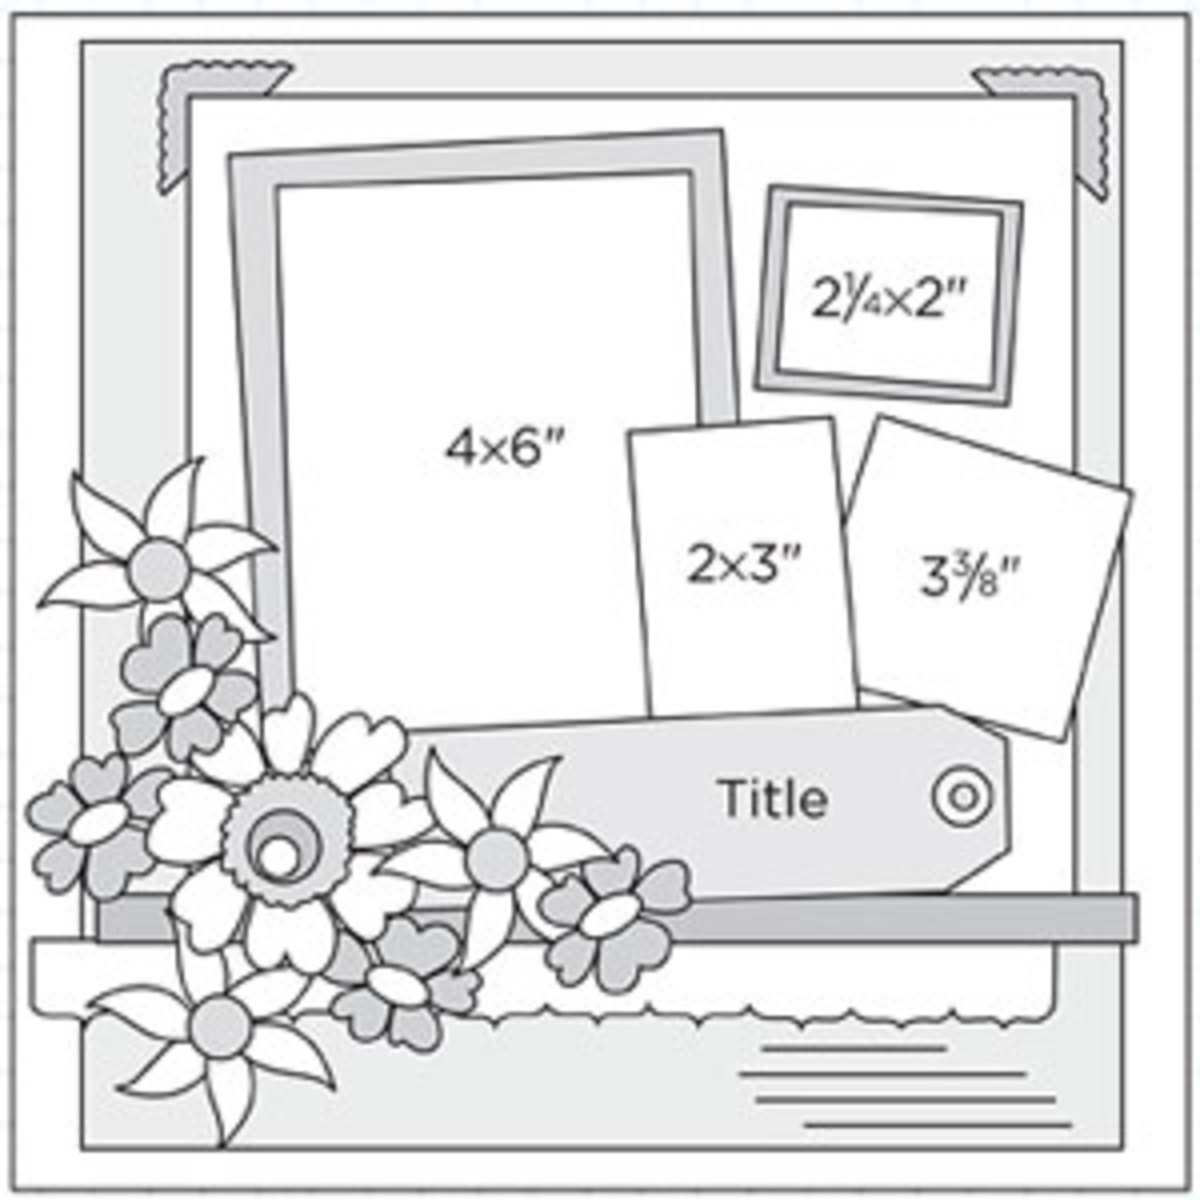 A scrapbook sketch is a quick way to create a page or a layout in the least amount of time Just go to your browser, type in scrapbook sketches and chose images. You will find sketches for just about any theme.